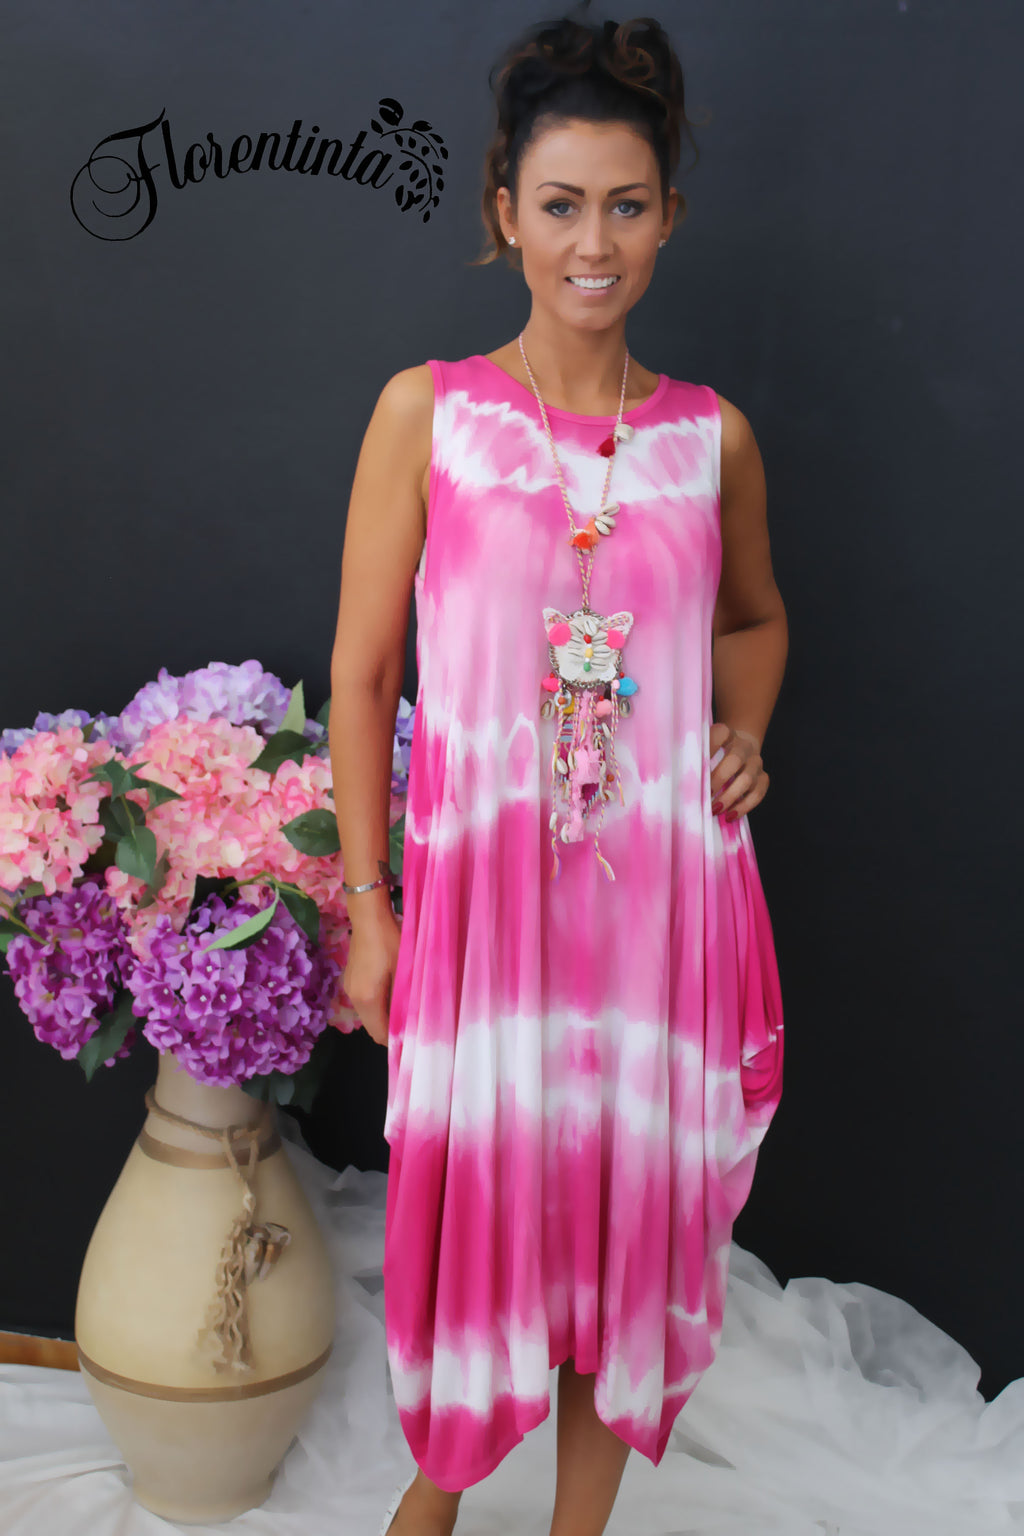 Cerise and White Tie-Dye Dress